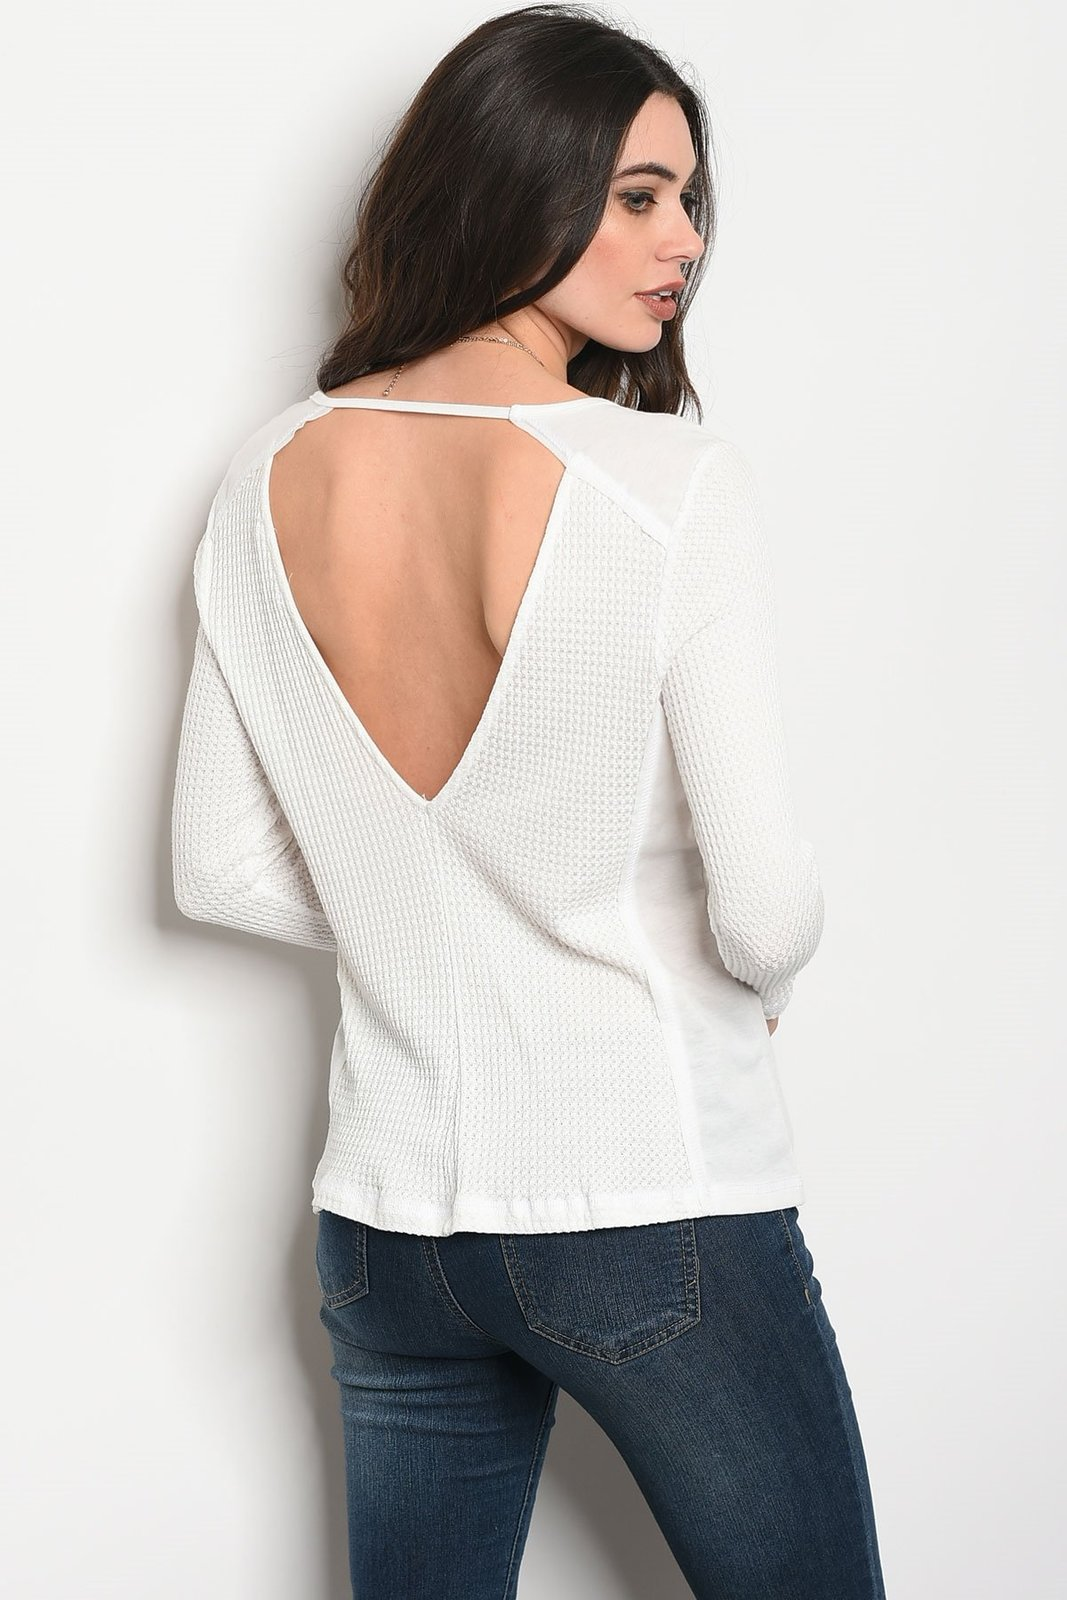 Ladies fashion long sleeve relaxed fit thermal top that features a v neckline image 2